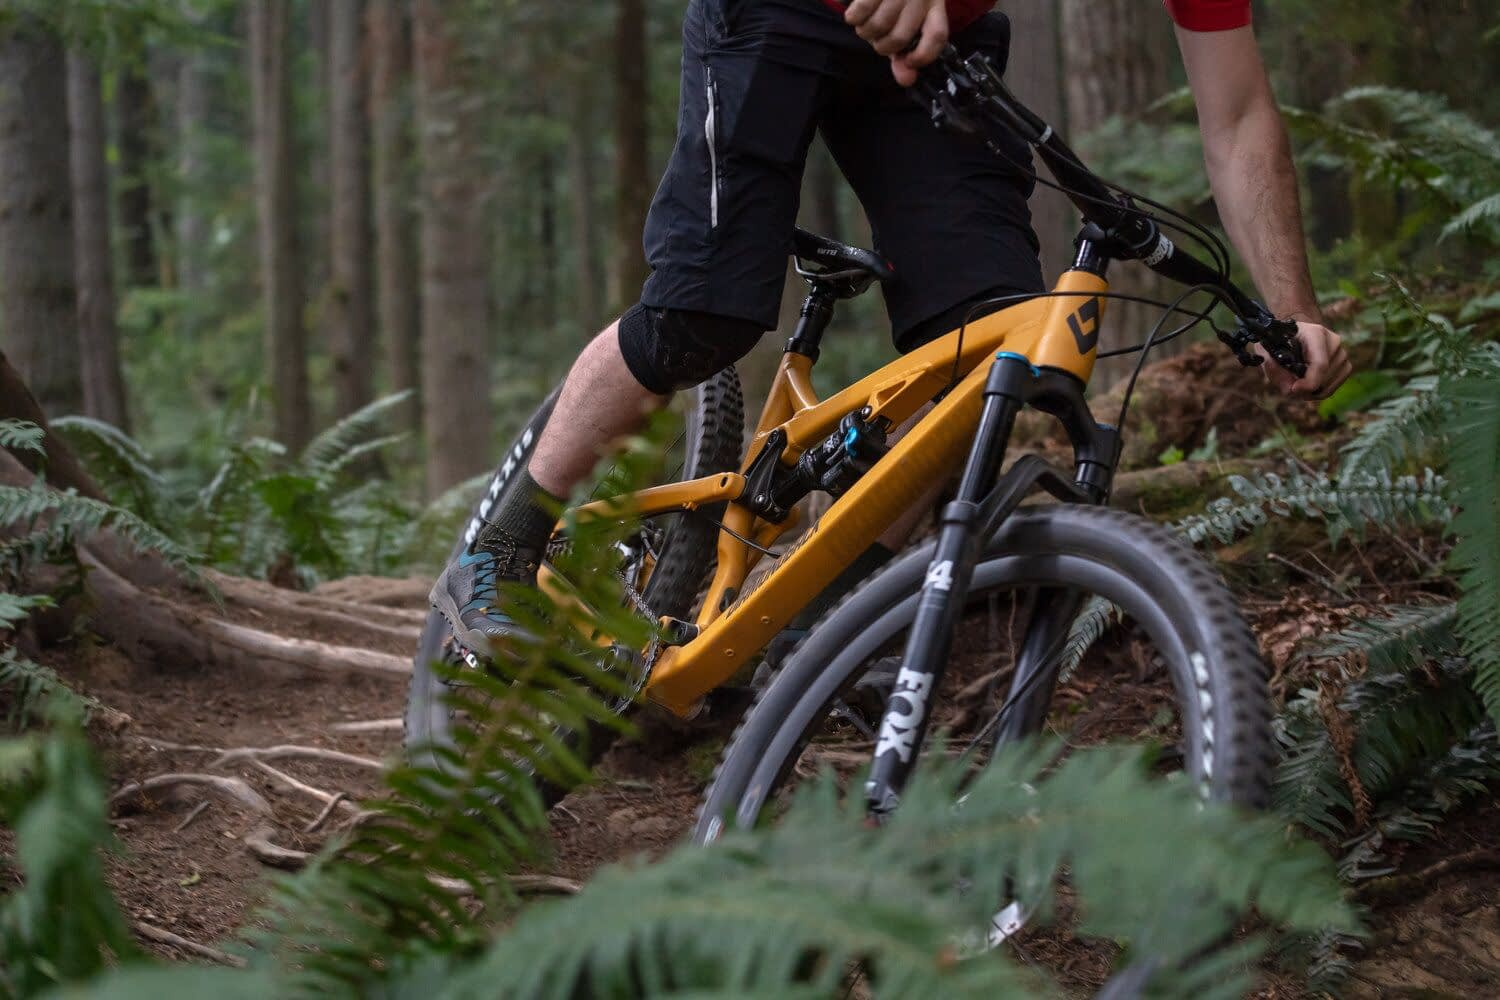 the legs of a biker in black shorts on a yellow mountain bike in a forest